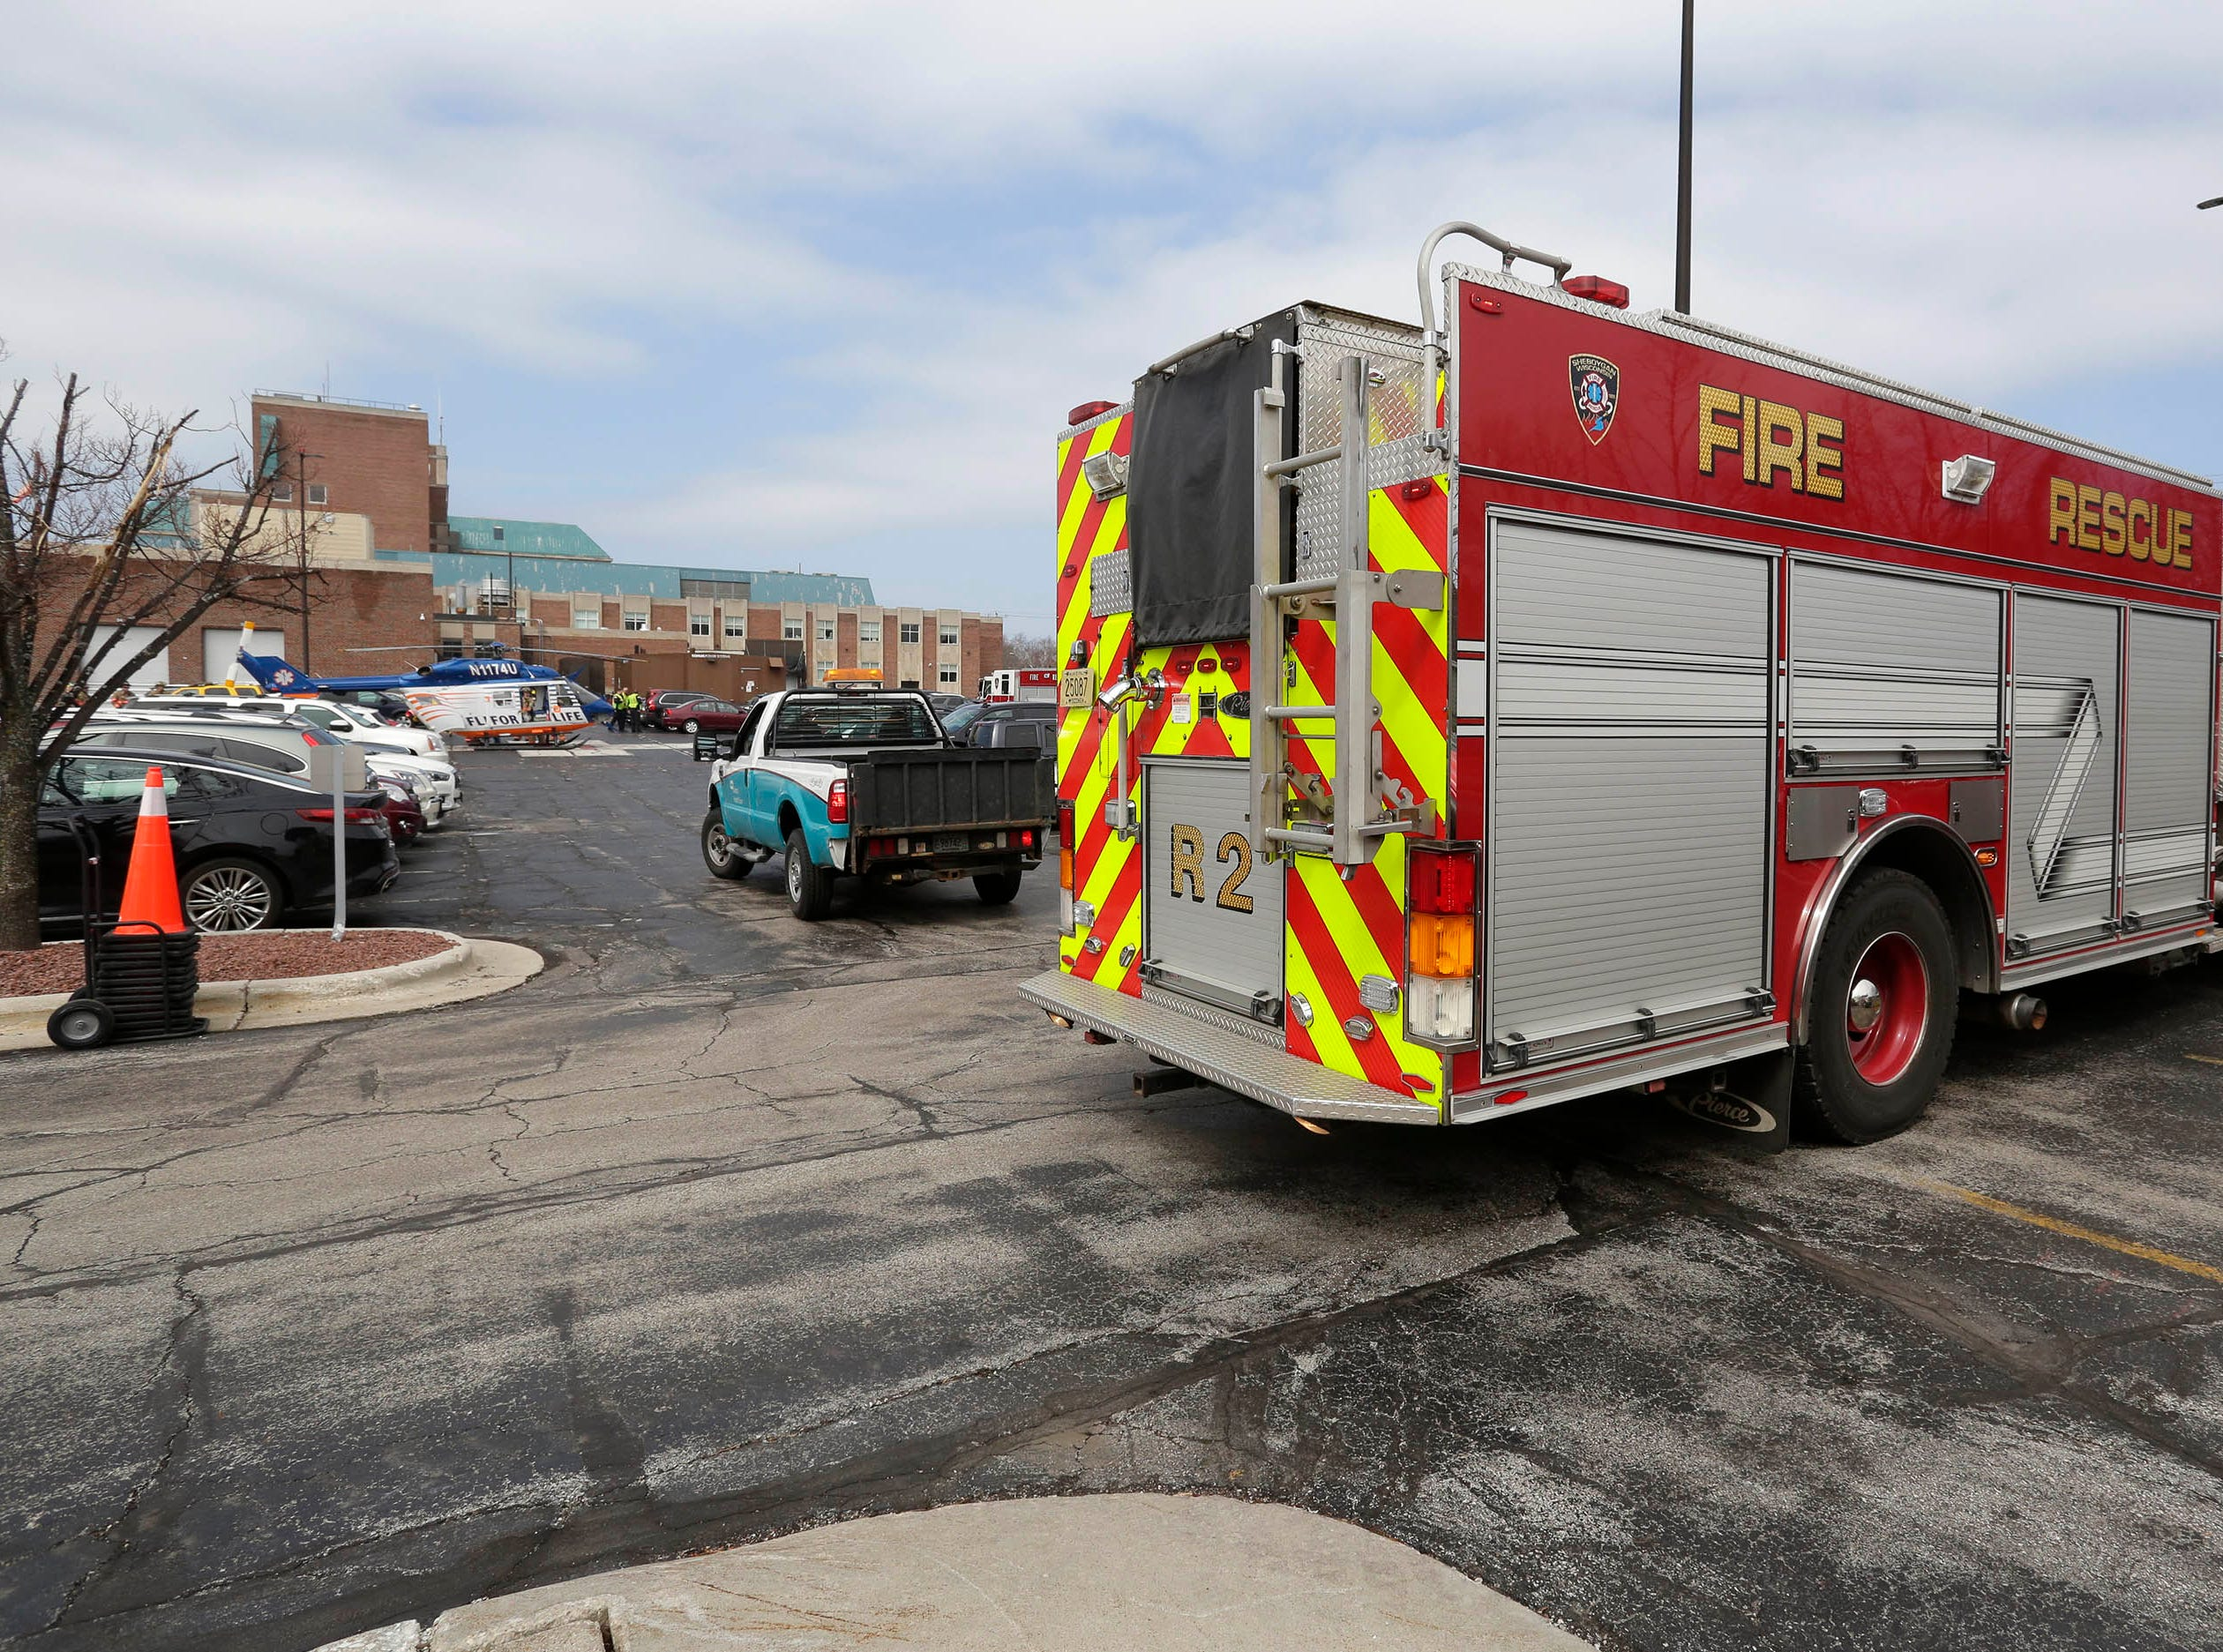 DRILL EXERCISE: A Sheboygan Fire truck is parked near Aurora Sheboygan Medical Center during an emergency training exercise, Tuesday, April 16, 2019, in Sheboygan, Wis.